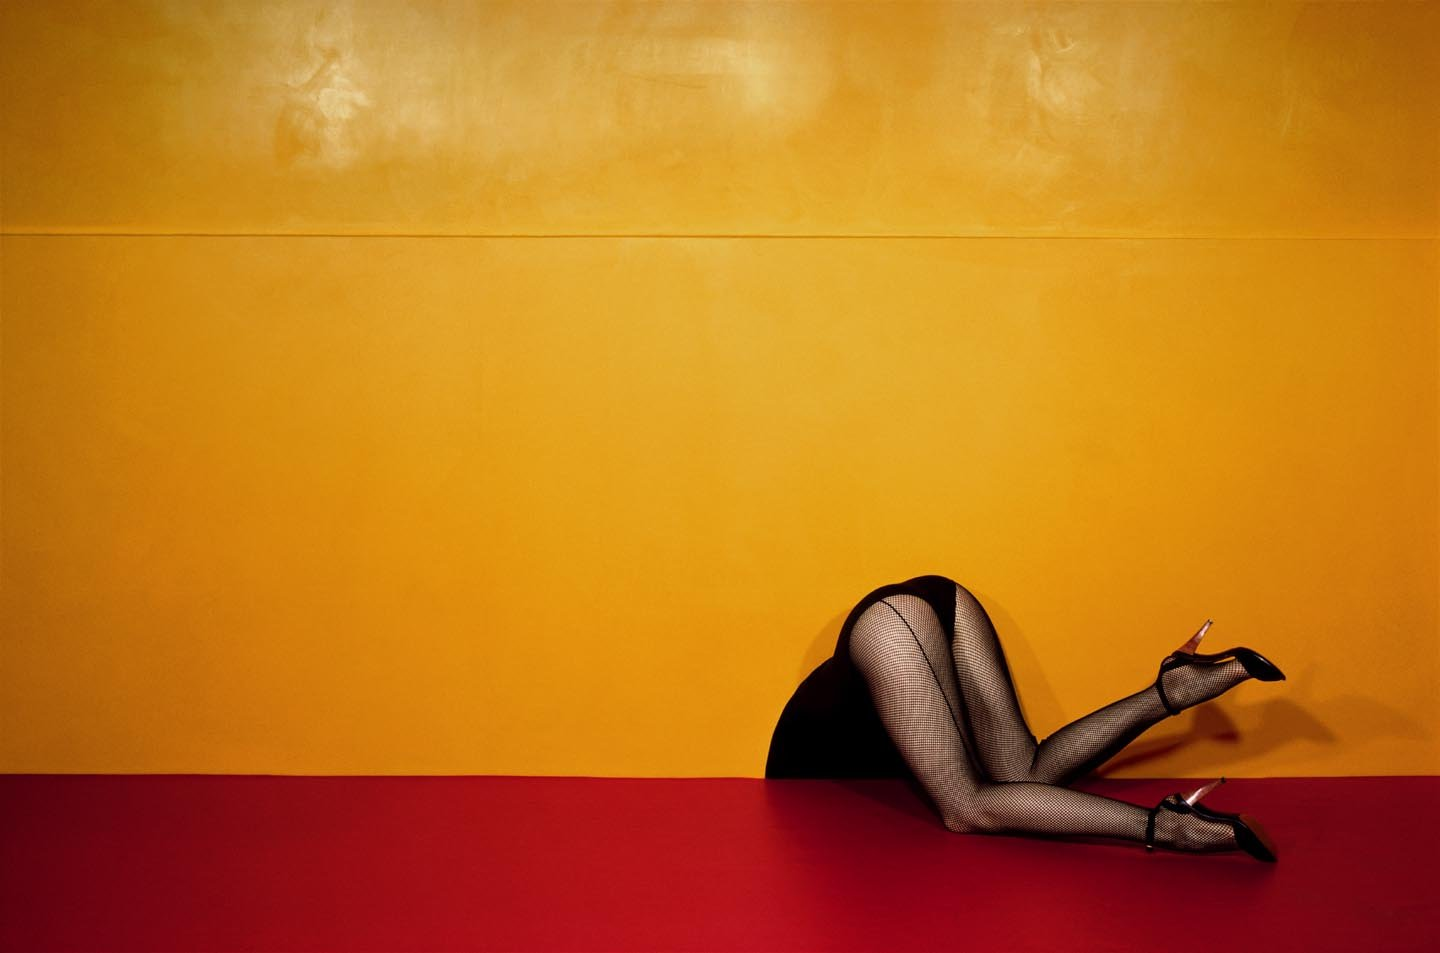 Guy Bourdin fashion photography woman yellow red